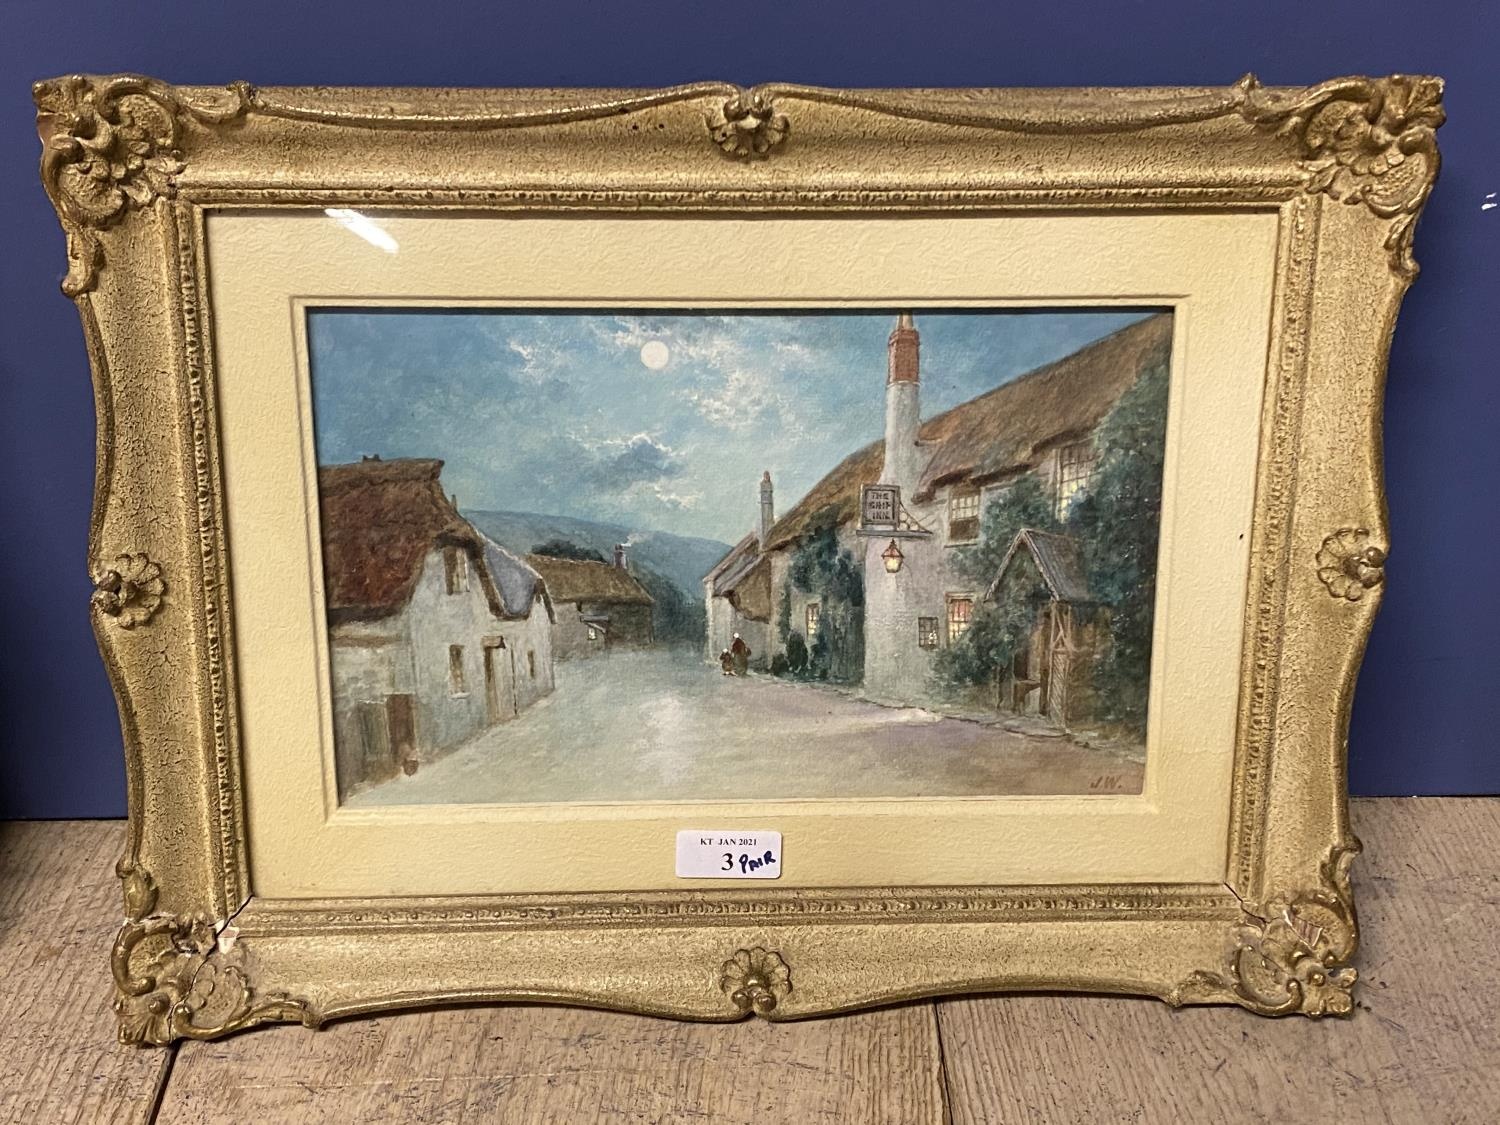 Pair of C19th watercolours, label verso, Cheddar Village and Porlock Village by Moonlight, J Wilson, - Image 2 of 7